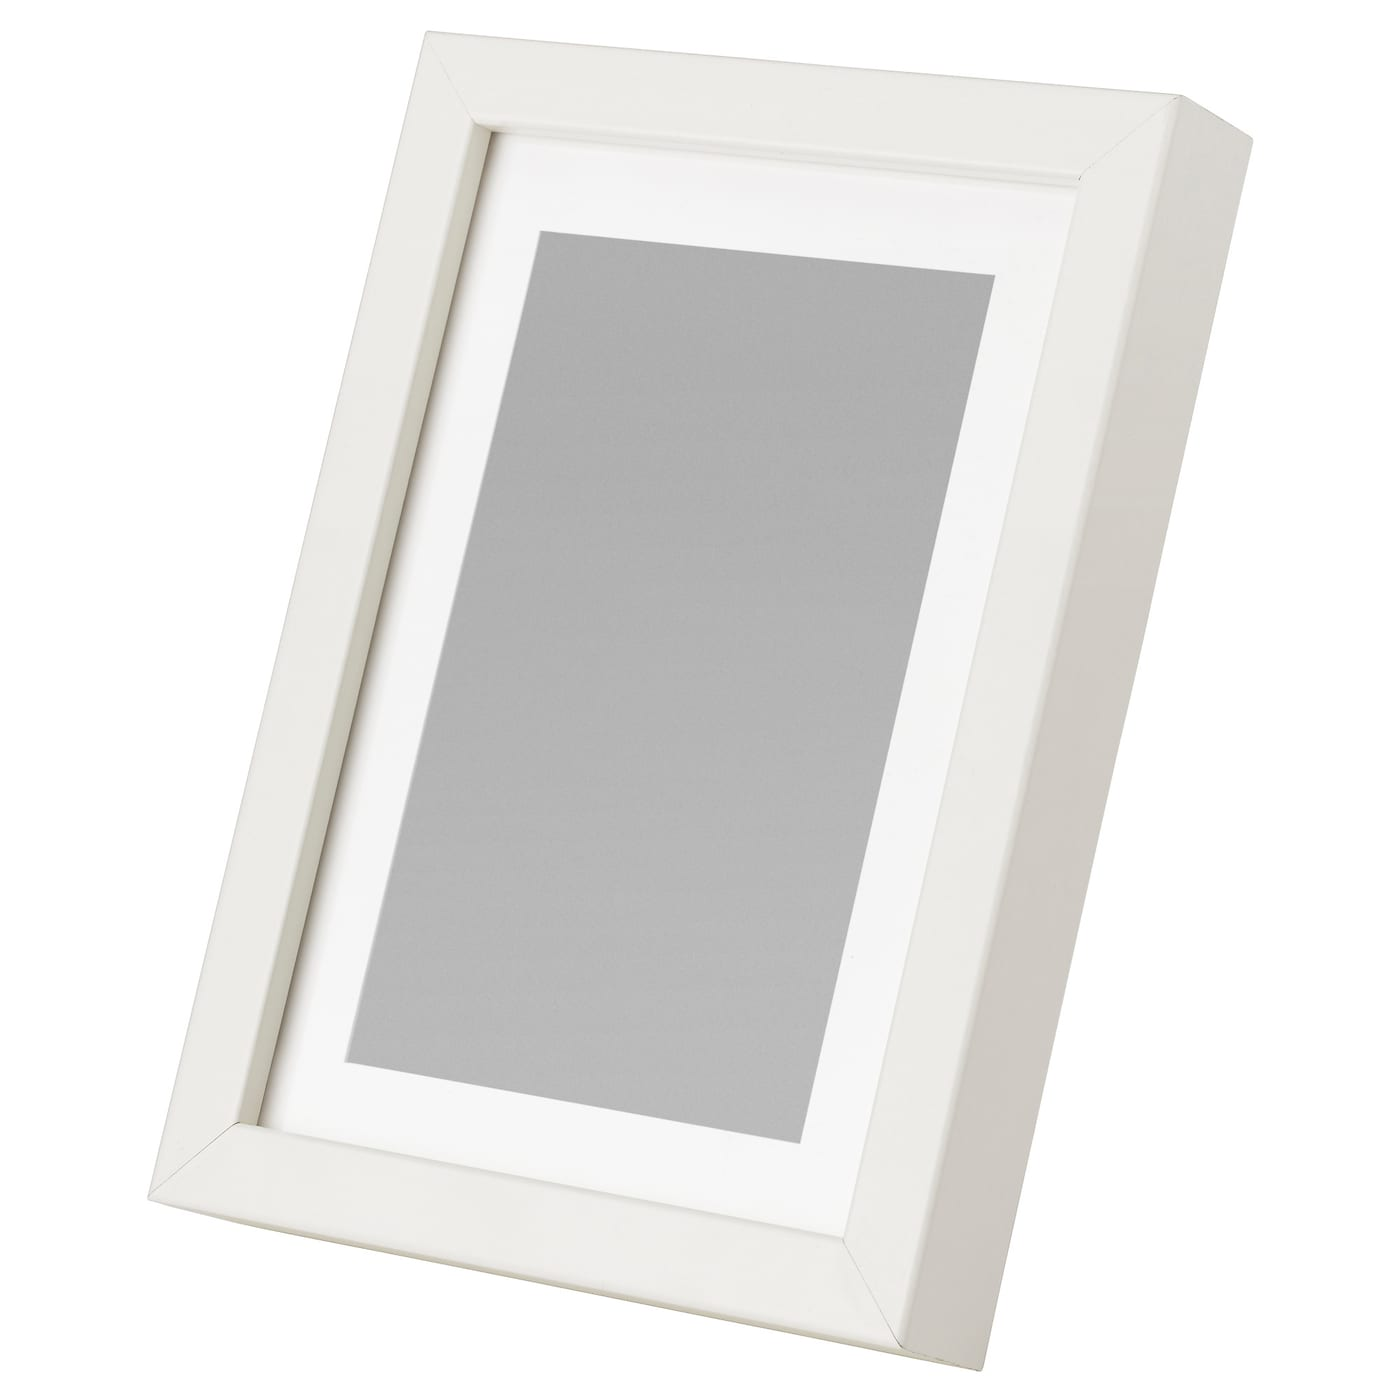 Picture frames photo frames ikea ireland dublin - Ikea marco fotos ...